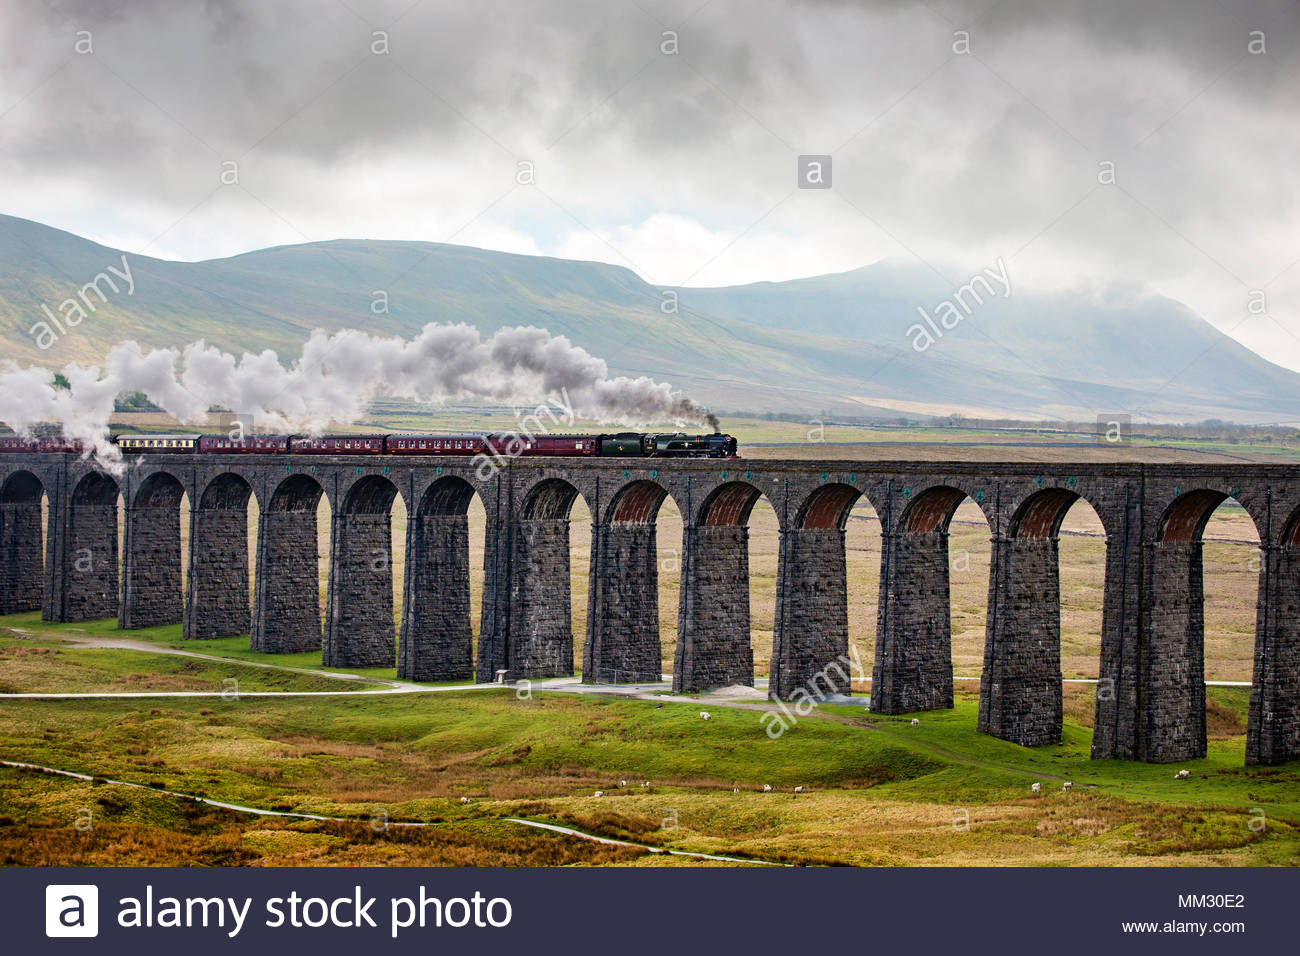 35018 SR Merchant Navy Class British India Line steam engine crosses Ribblehead Viaduct in the Yorkshire Dales. - Stock Image